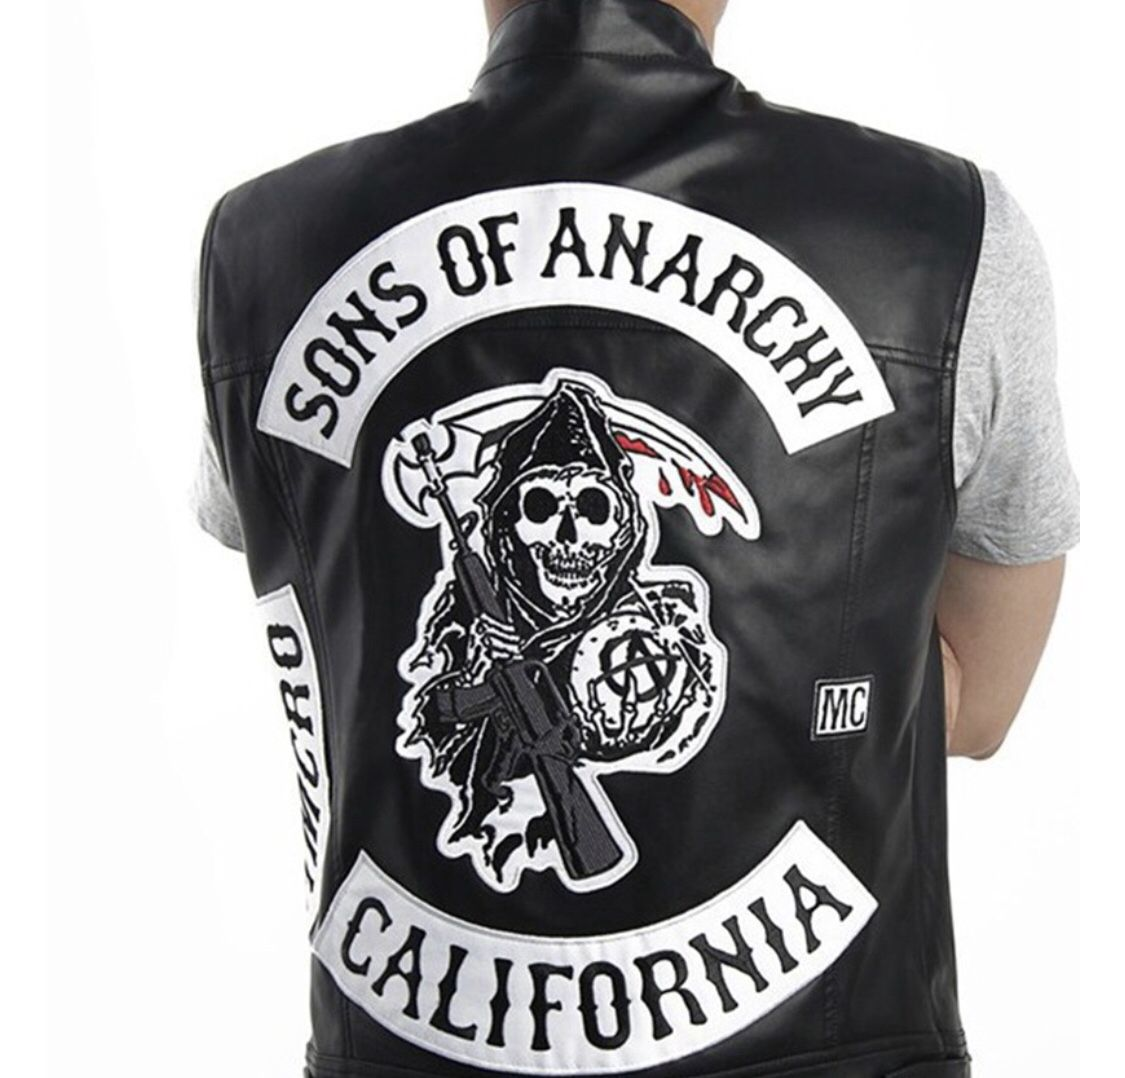 Freeshipping Sons Of Anarchy Vest Ozgadgetshop Sons Of Anarchy Vest Sons Of Anarchy Costume Sons Of Anarchy